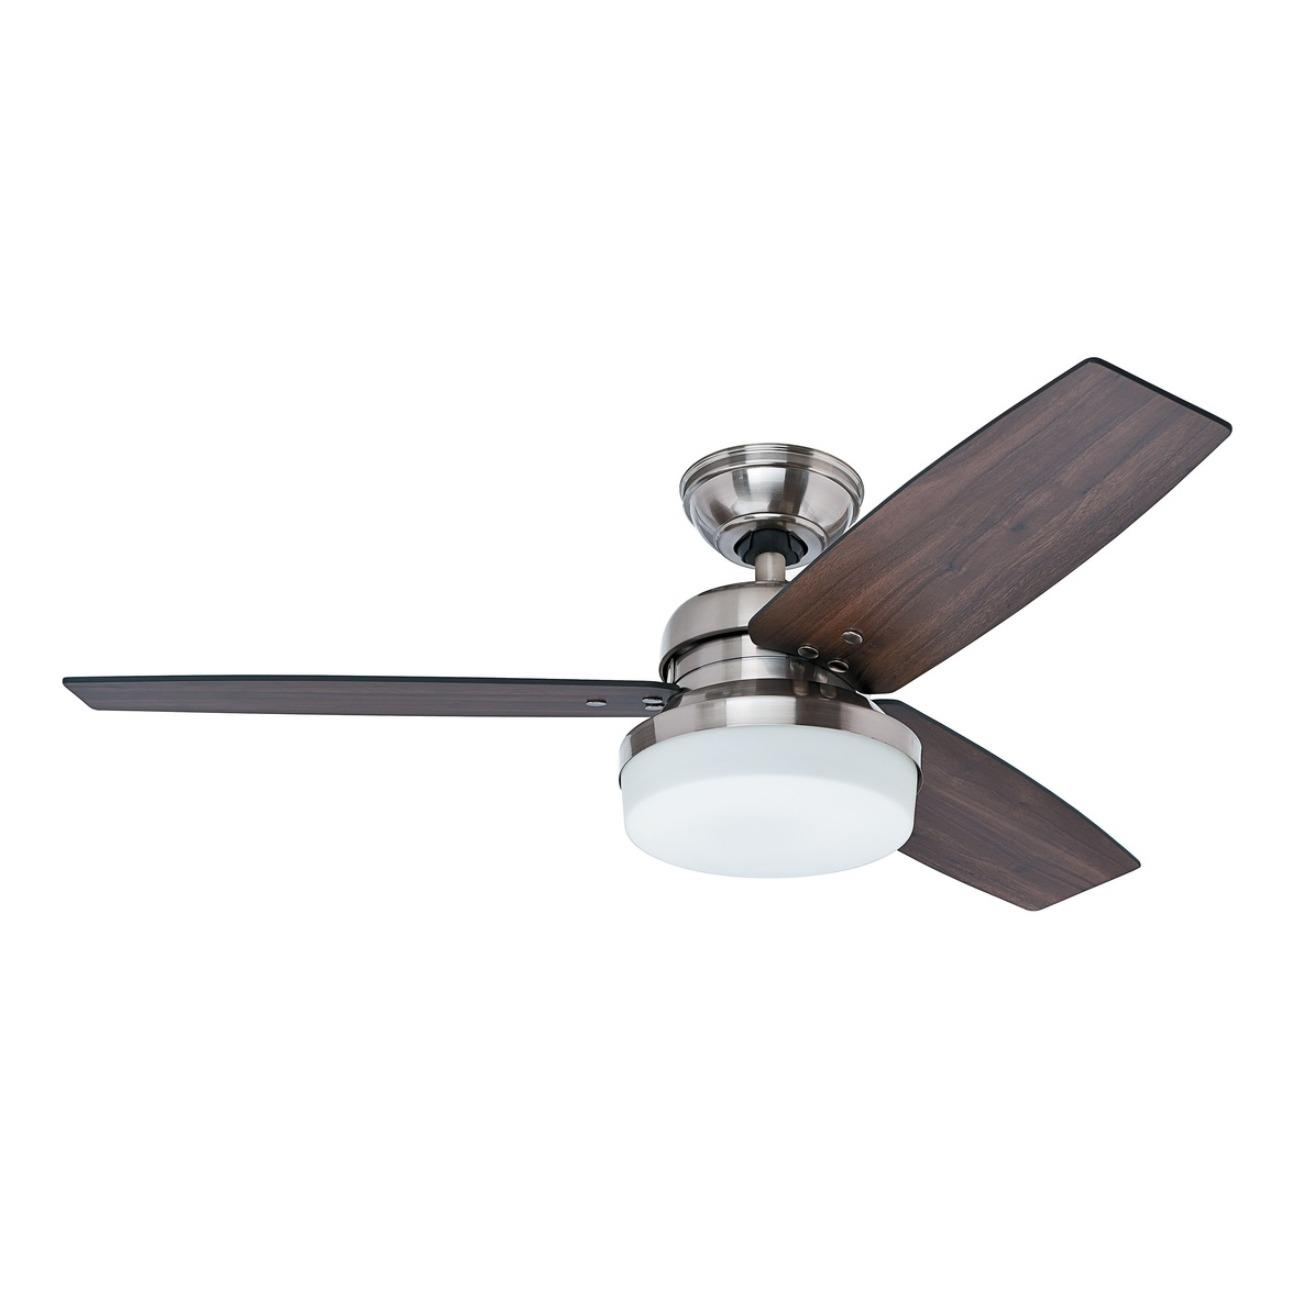 fans fan airplane propeller much large id ceiling are how